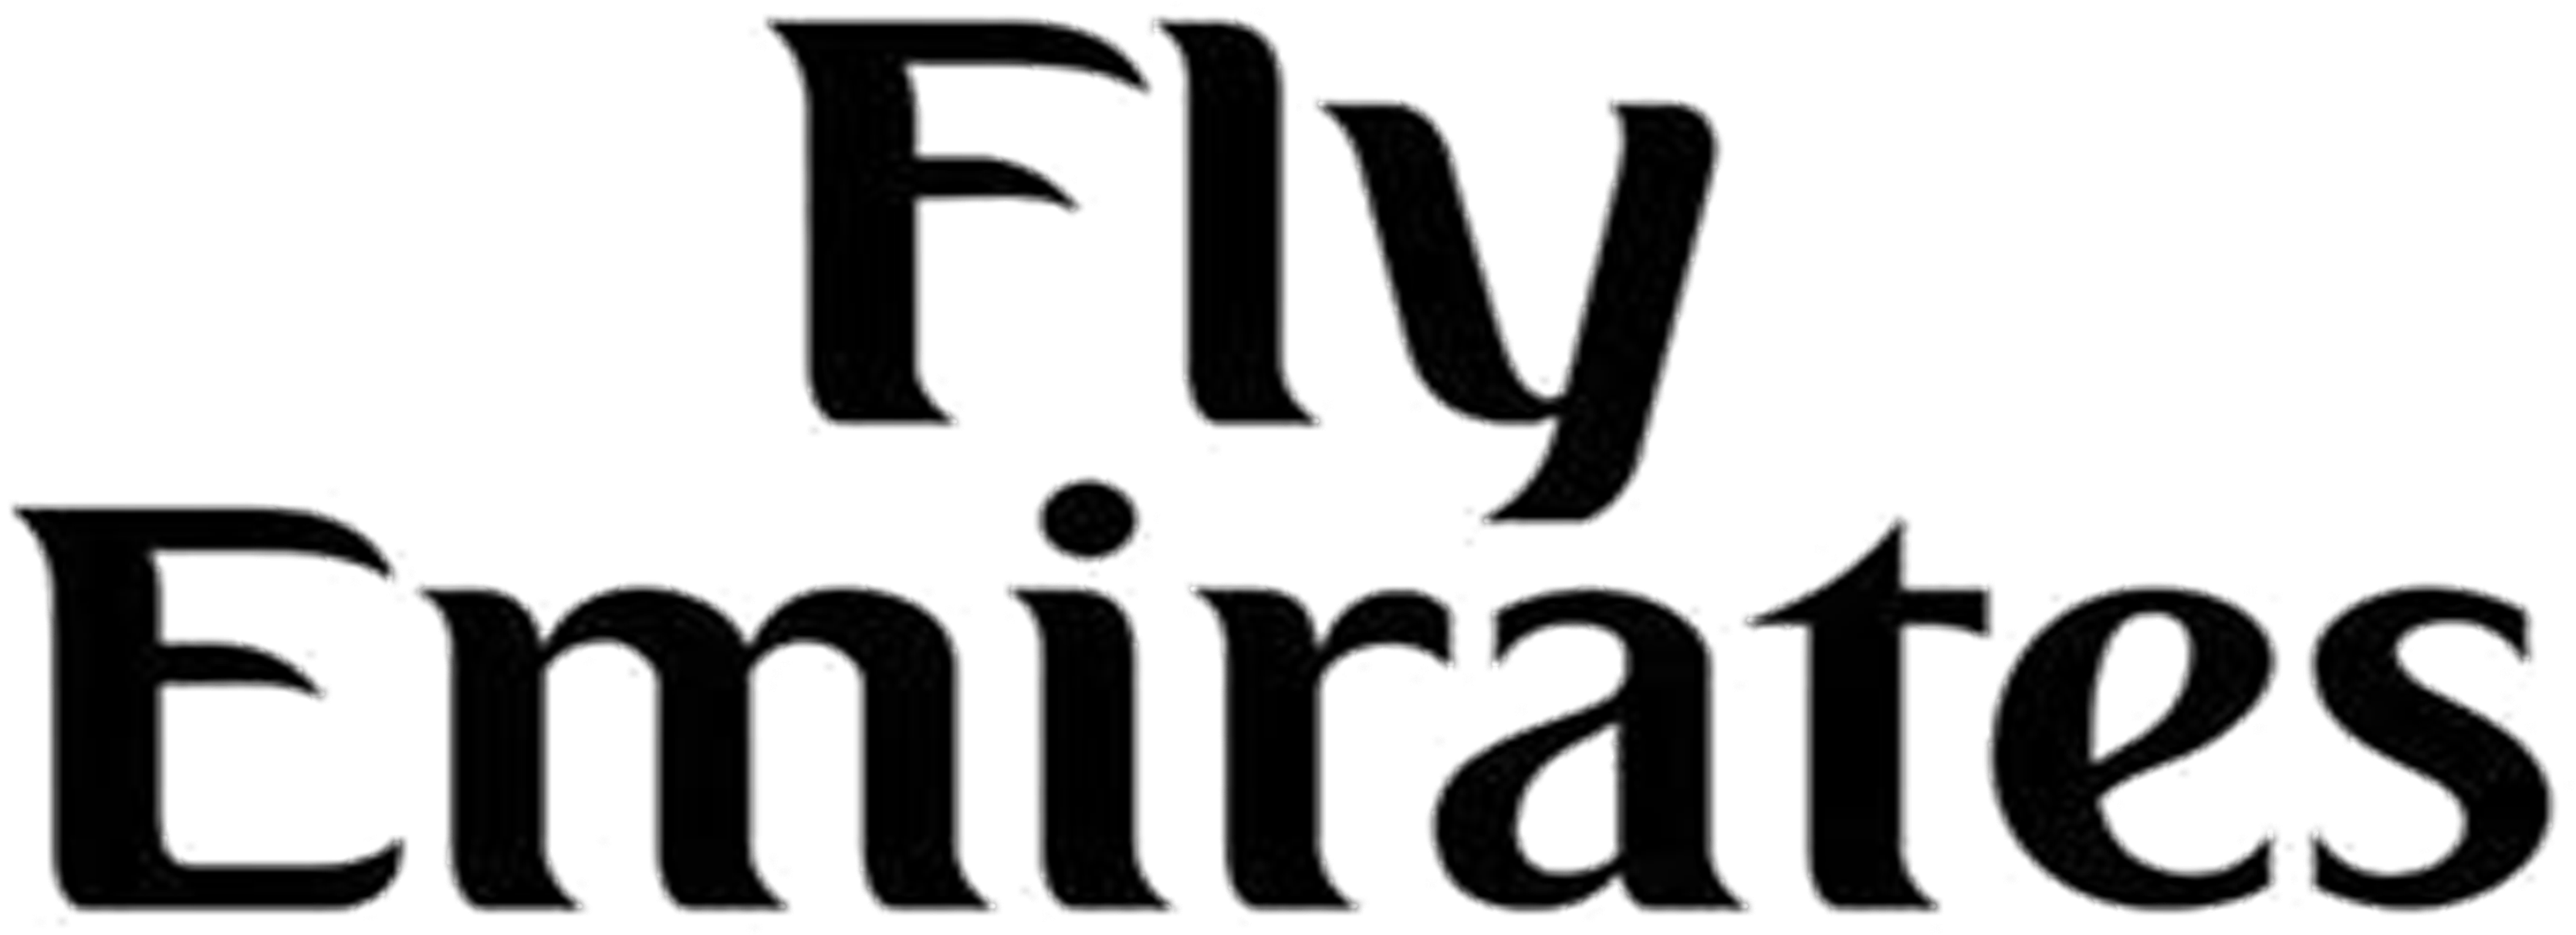 Fly emirates clipart logo freeuse library Fly Emirates Logo Png – animesubindo.co freeuse library